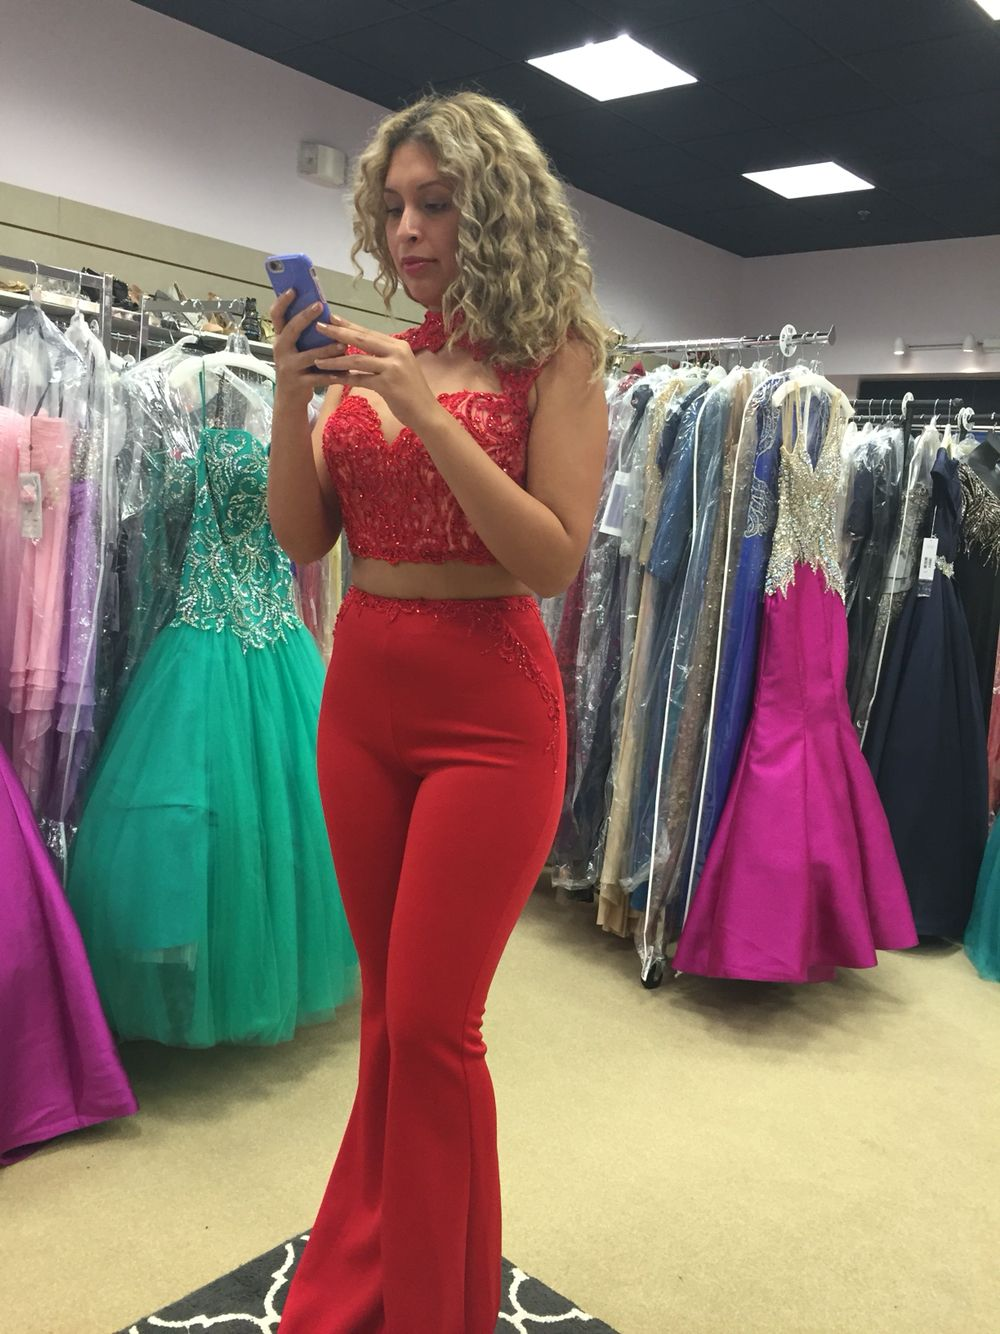 440911da4f7a Tony Bowls pant suit, excellent style for Prom Tony Bowls, Prom Dress,  Designer